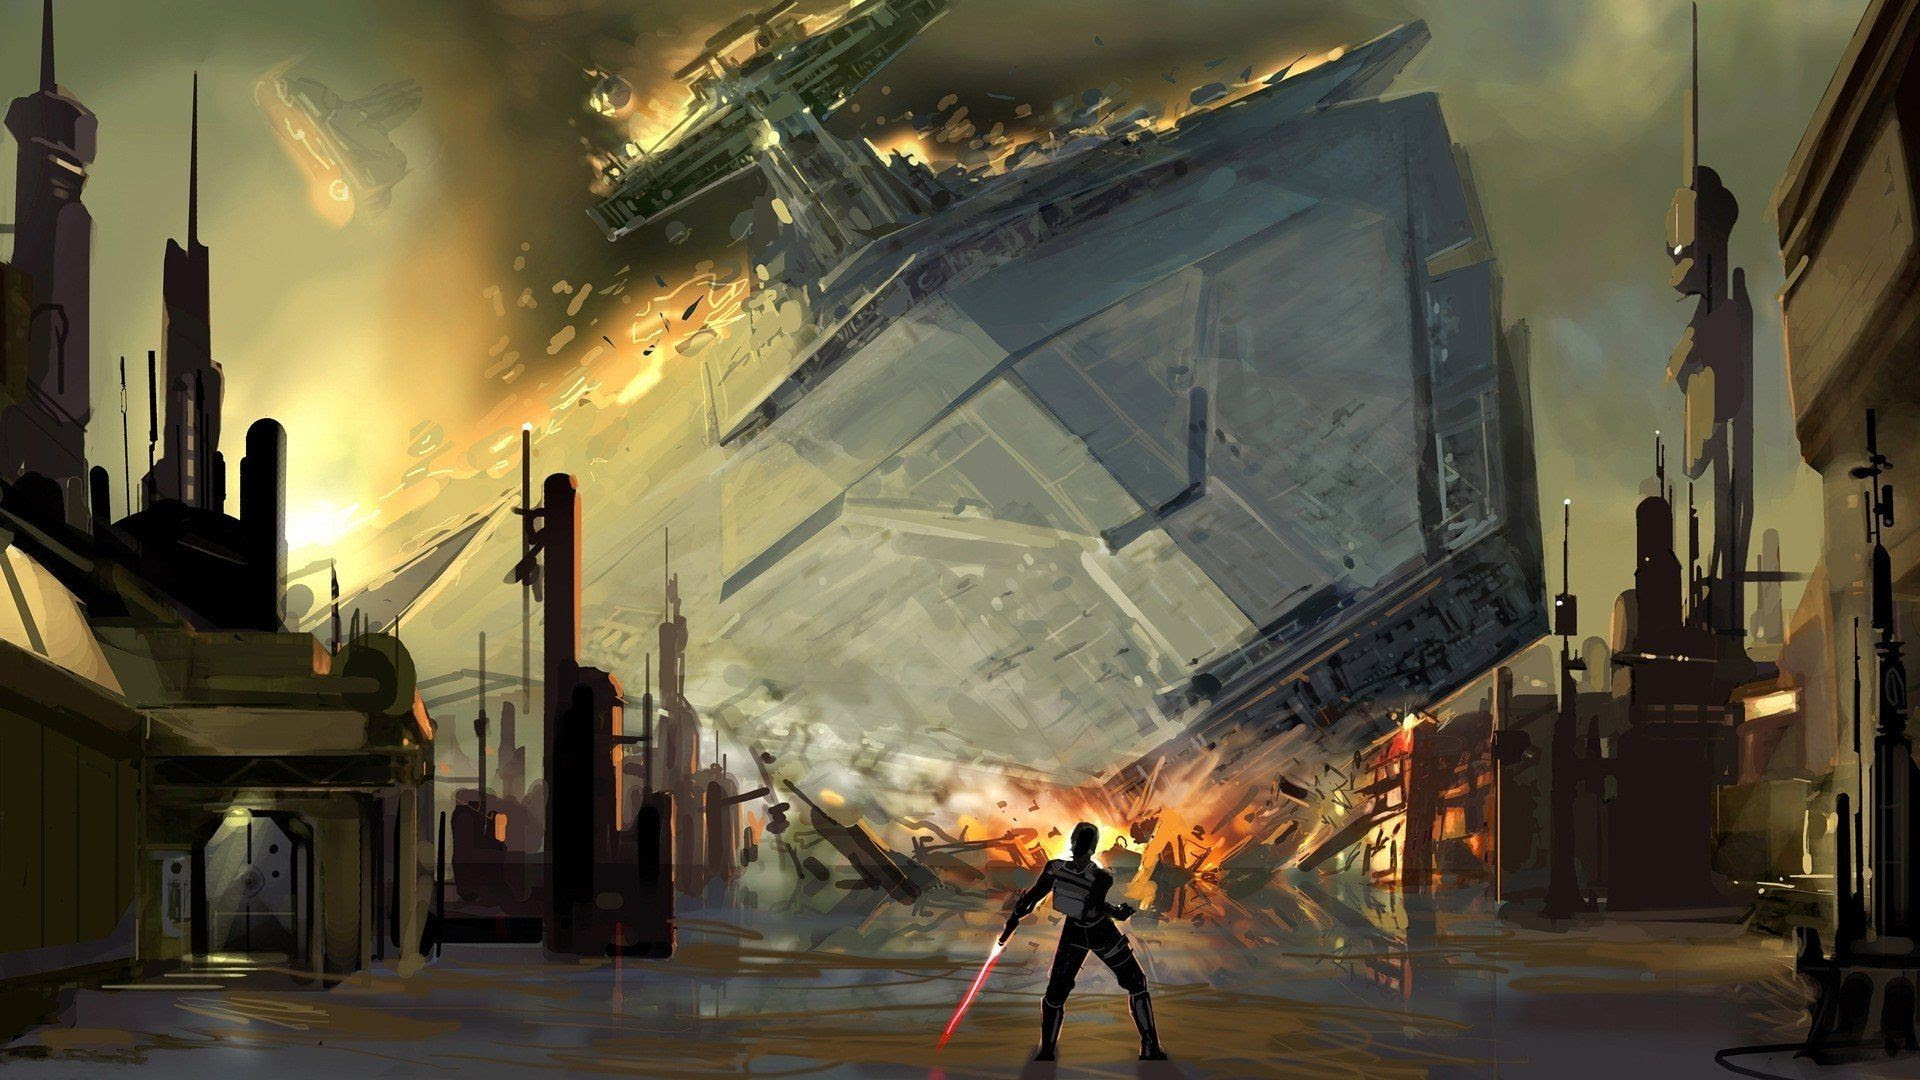 Star Wars Art Wallpaper 77 Images